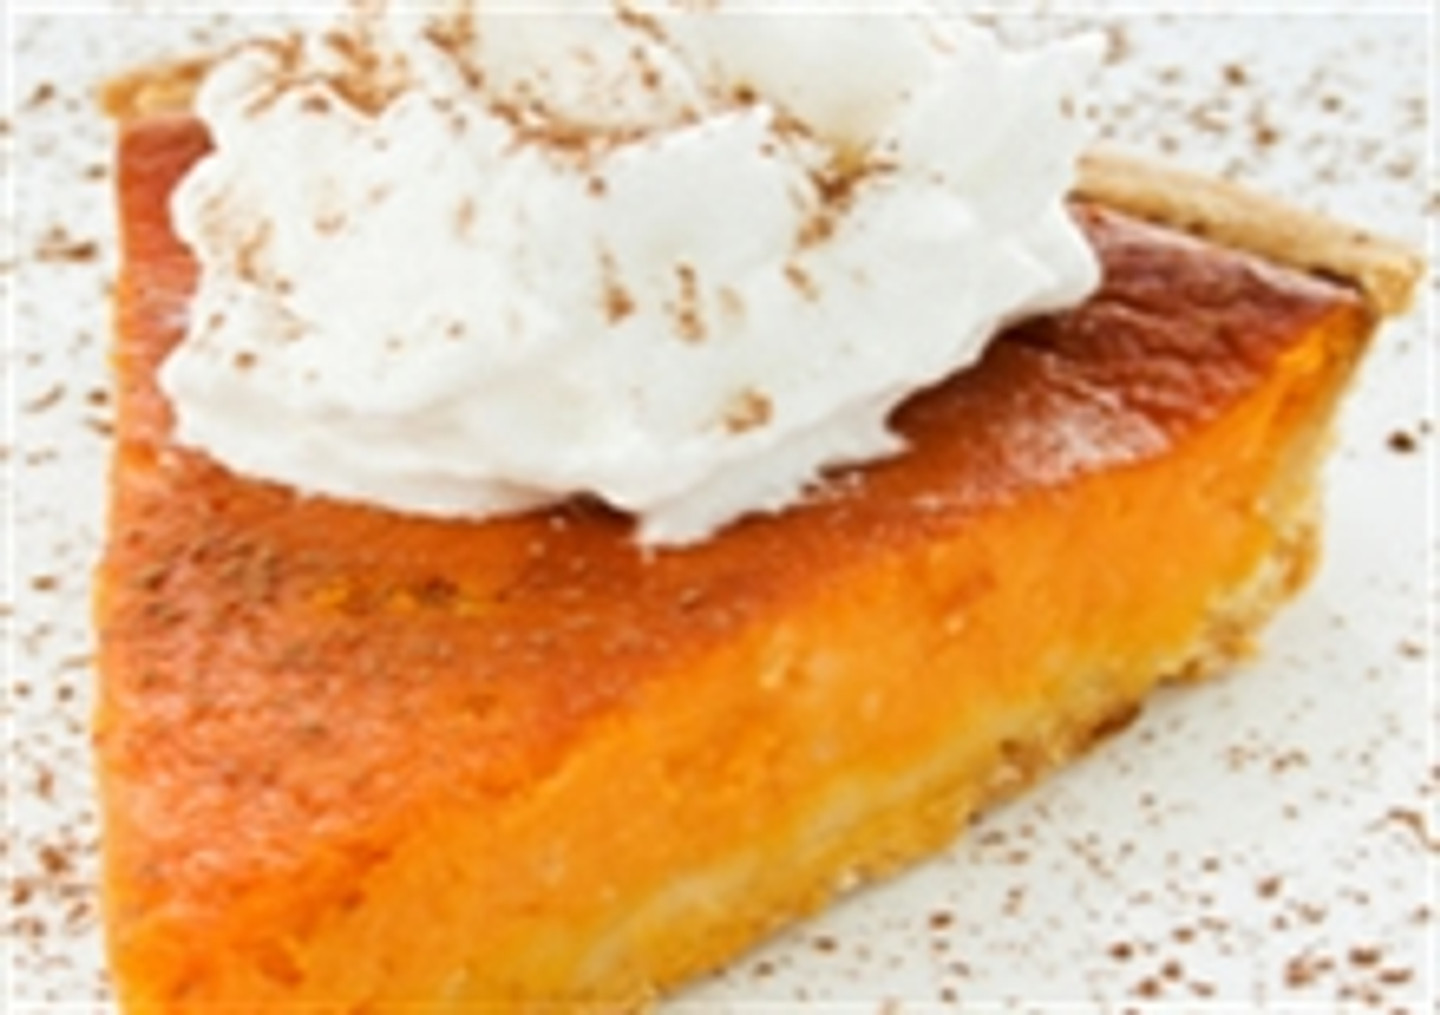 Delicious slice of pumpkin pie with whipped cream and a sprinkle of cinnamon